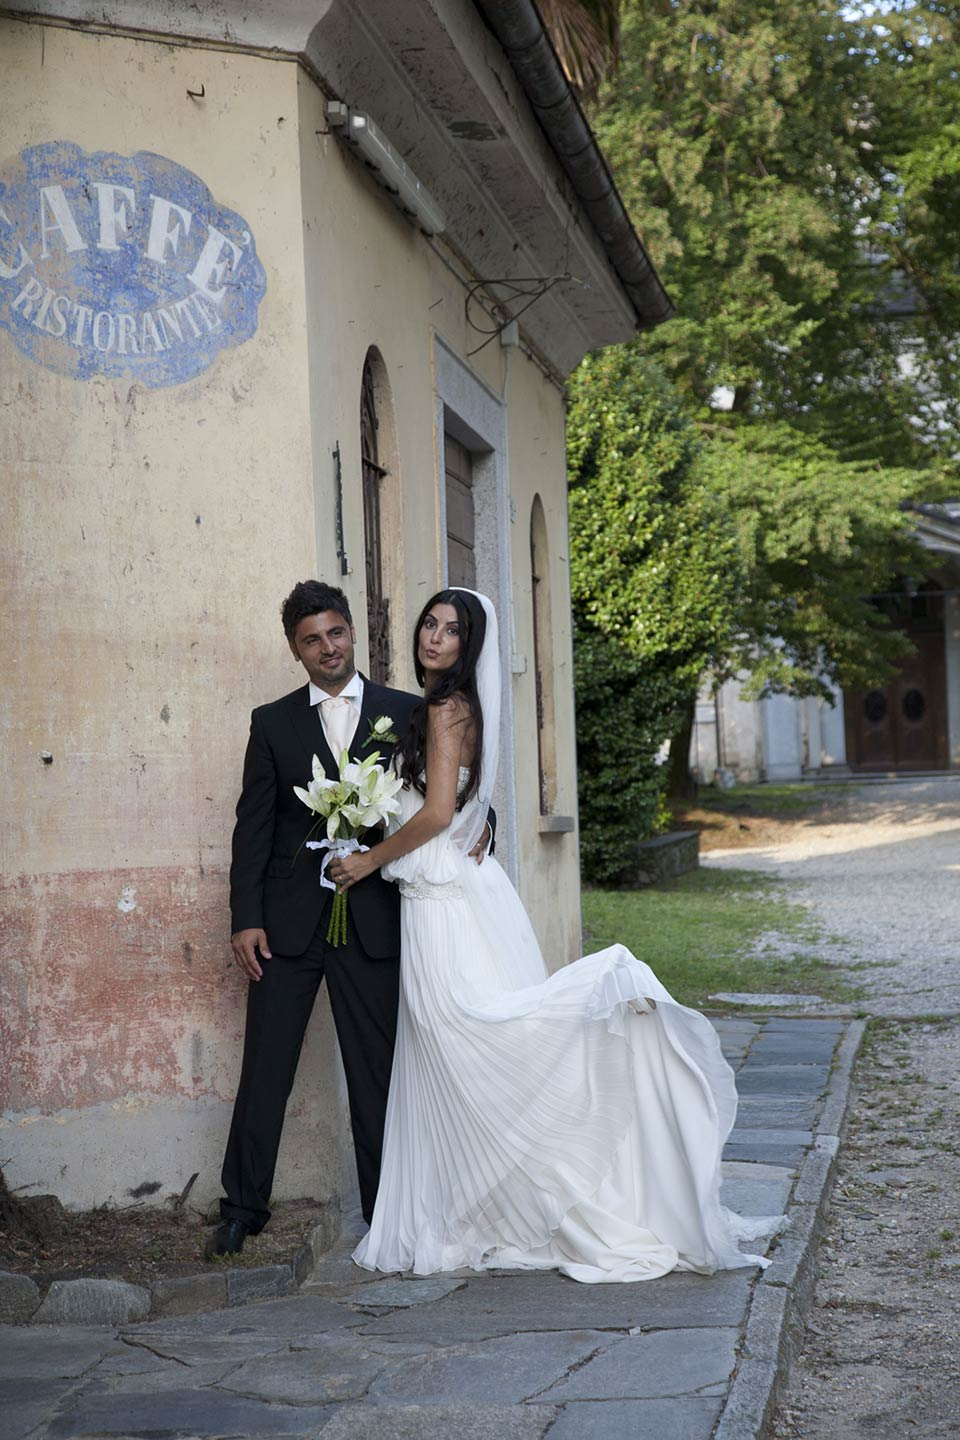 wedding lake Orta